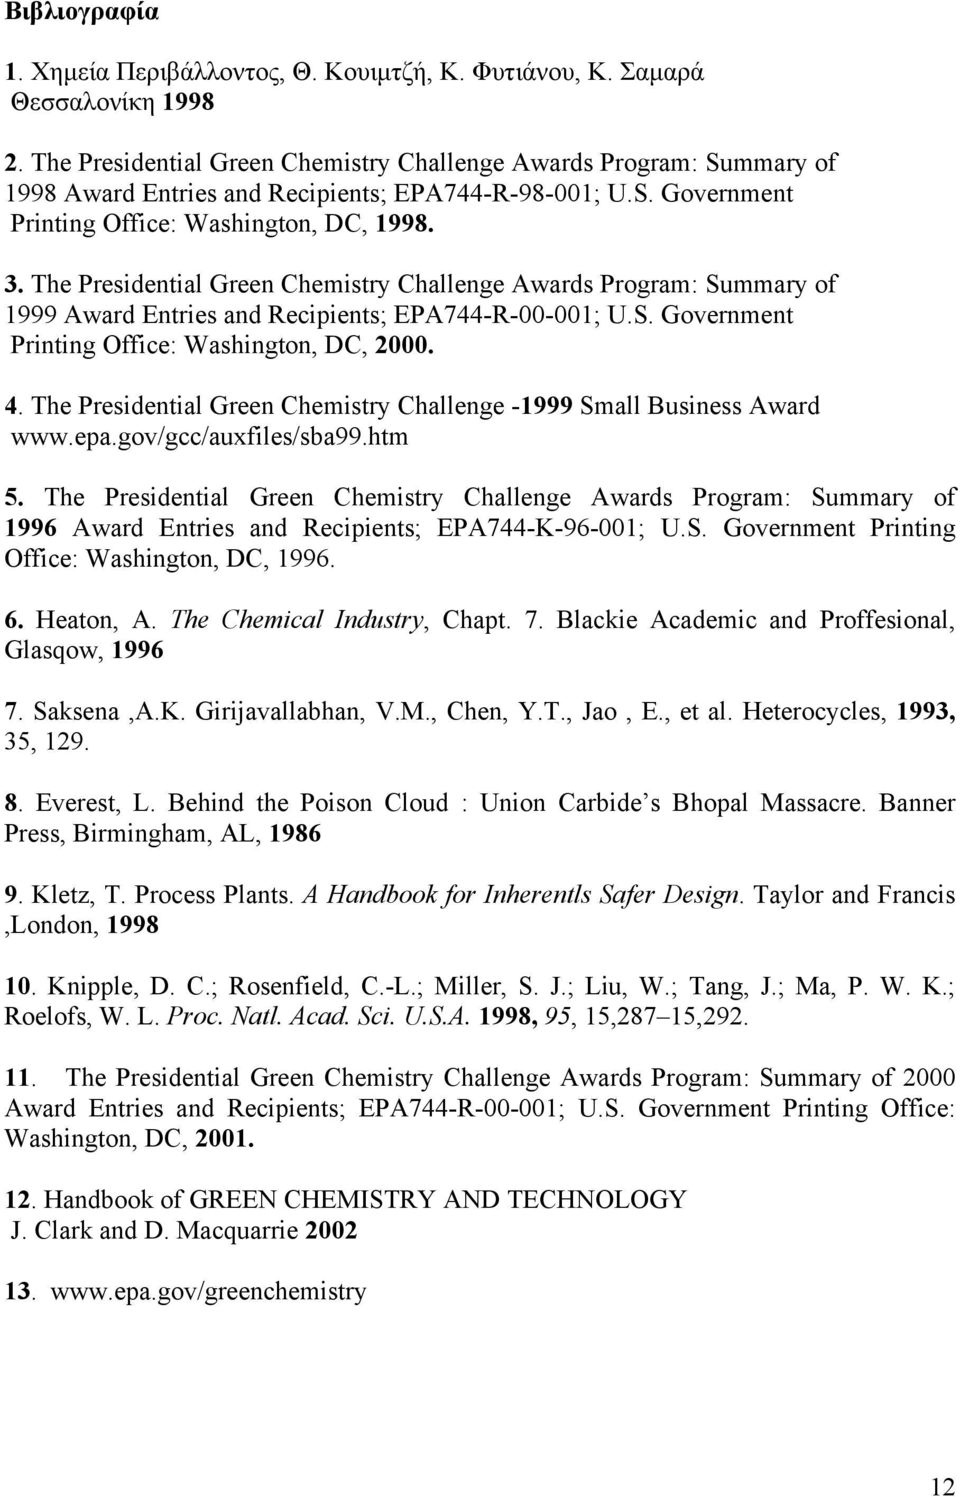 The Presidential Green Chemistry Challenge Awards Program: Summary of 1999 Award Entries and Recipients; EPA744-R-00-001; U.S. Government Printing ffice: Washington, DC, 2000. 4.